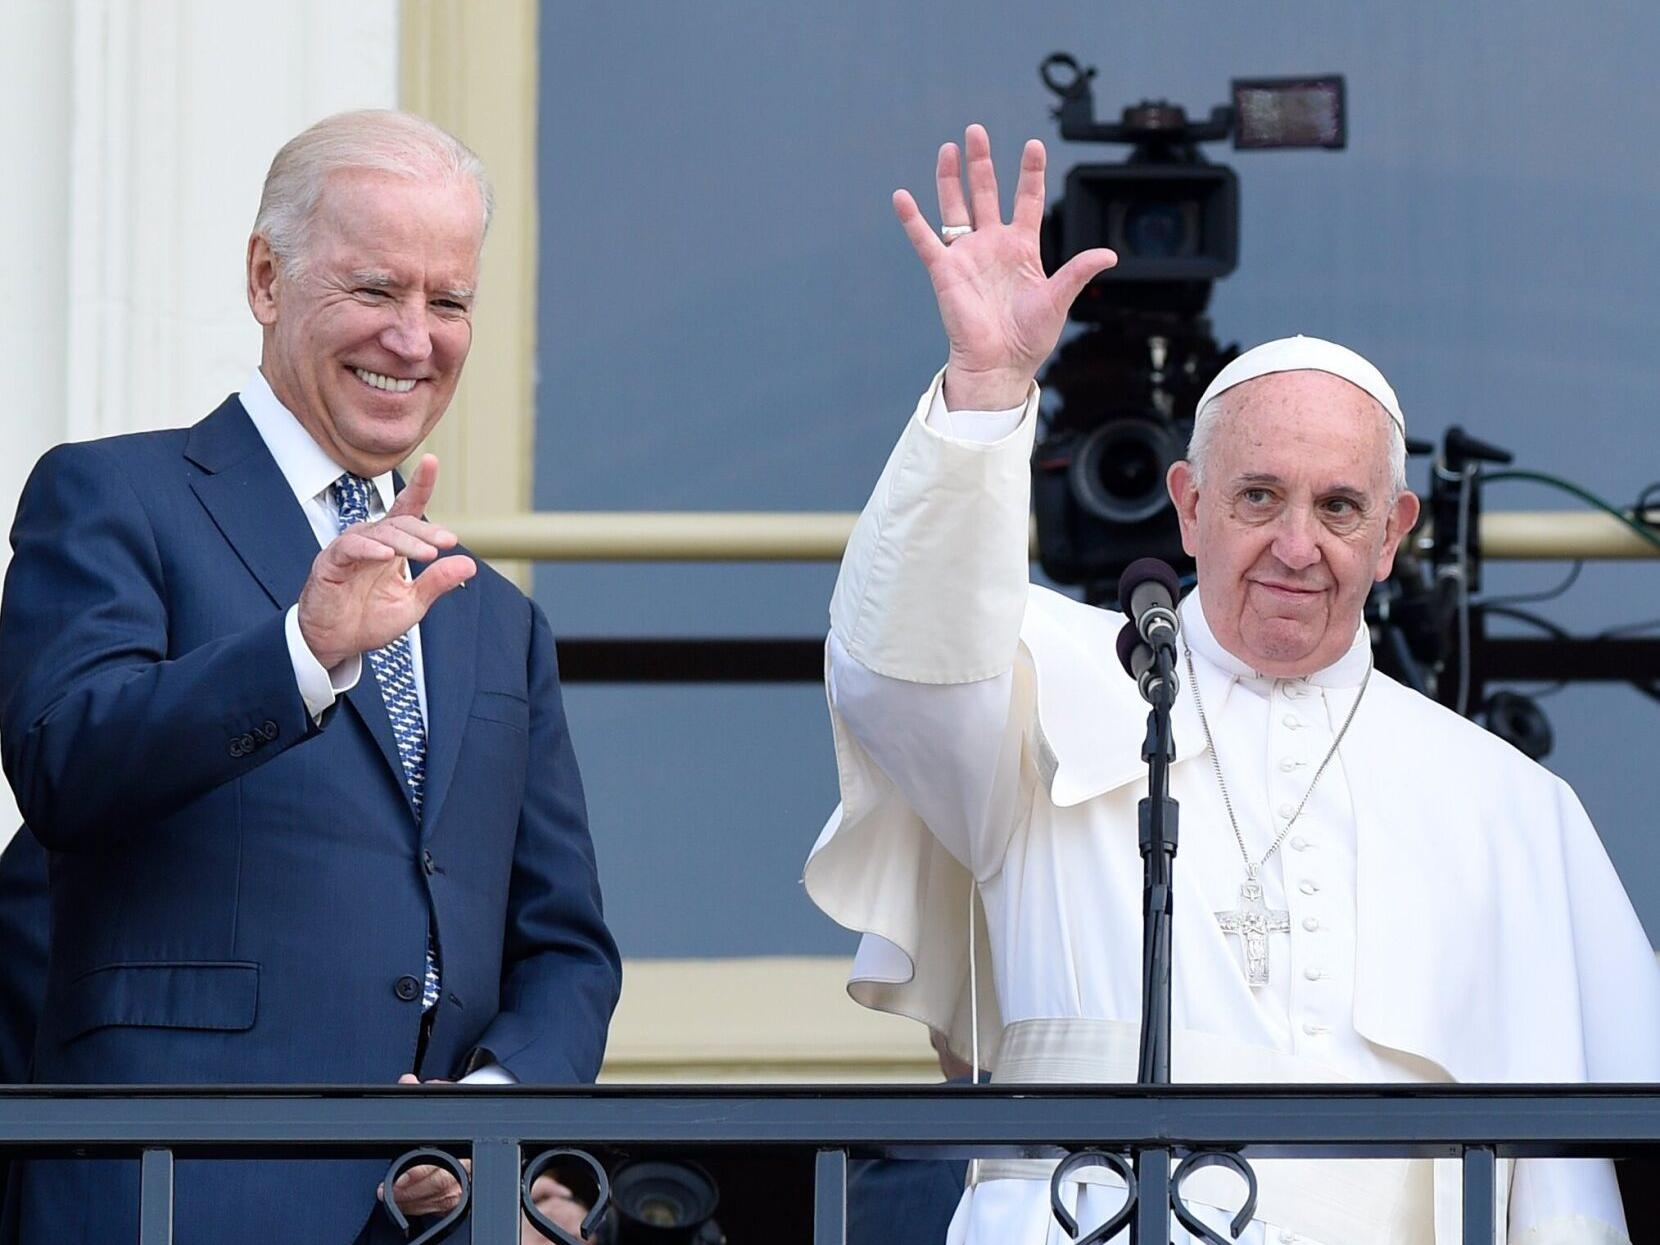 Pope Francis Congratulates Joe Biden A Lifelong Catholic On Election Victory Local Politics Nola Com